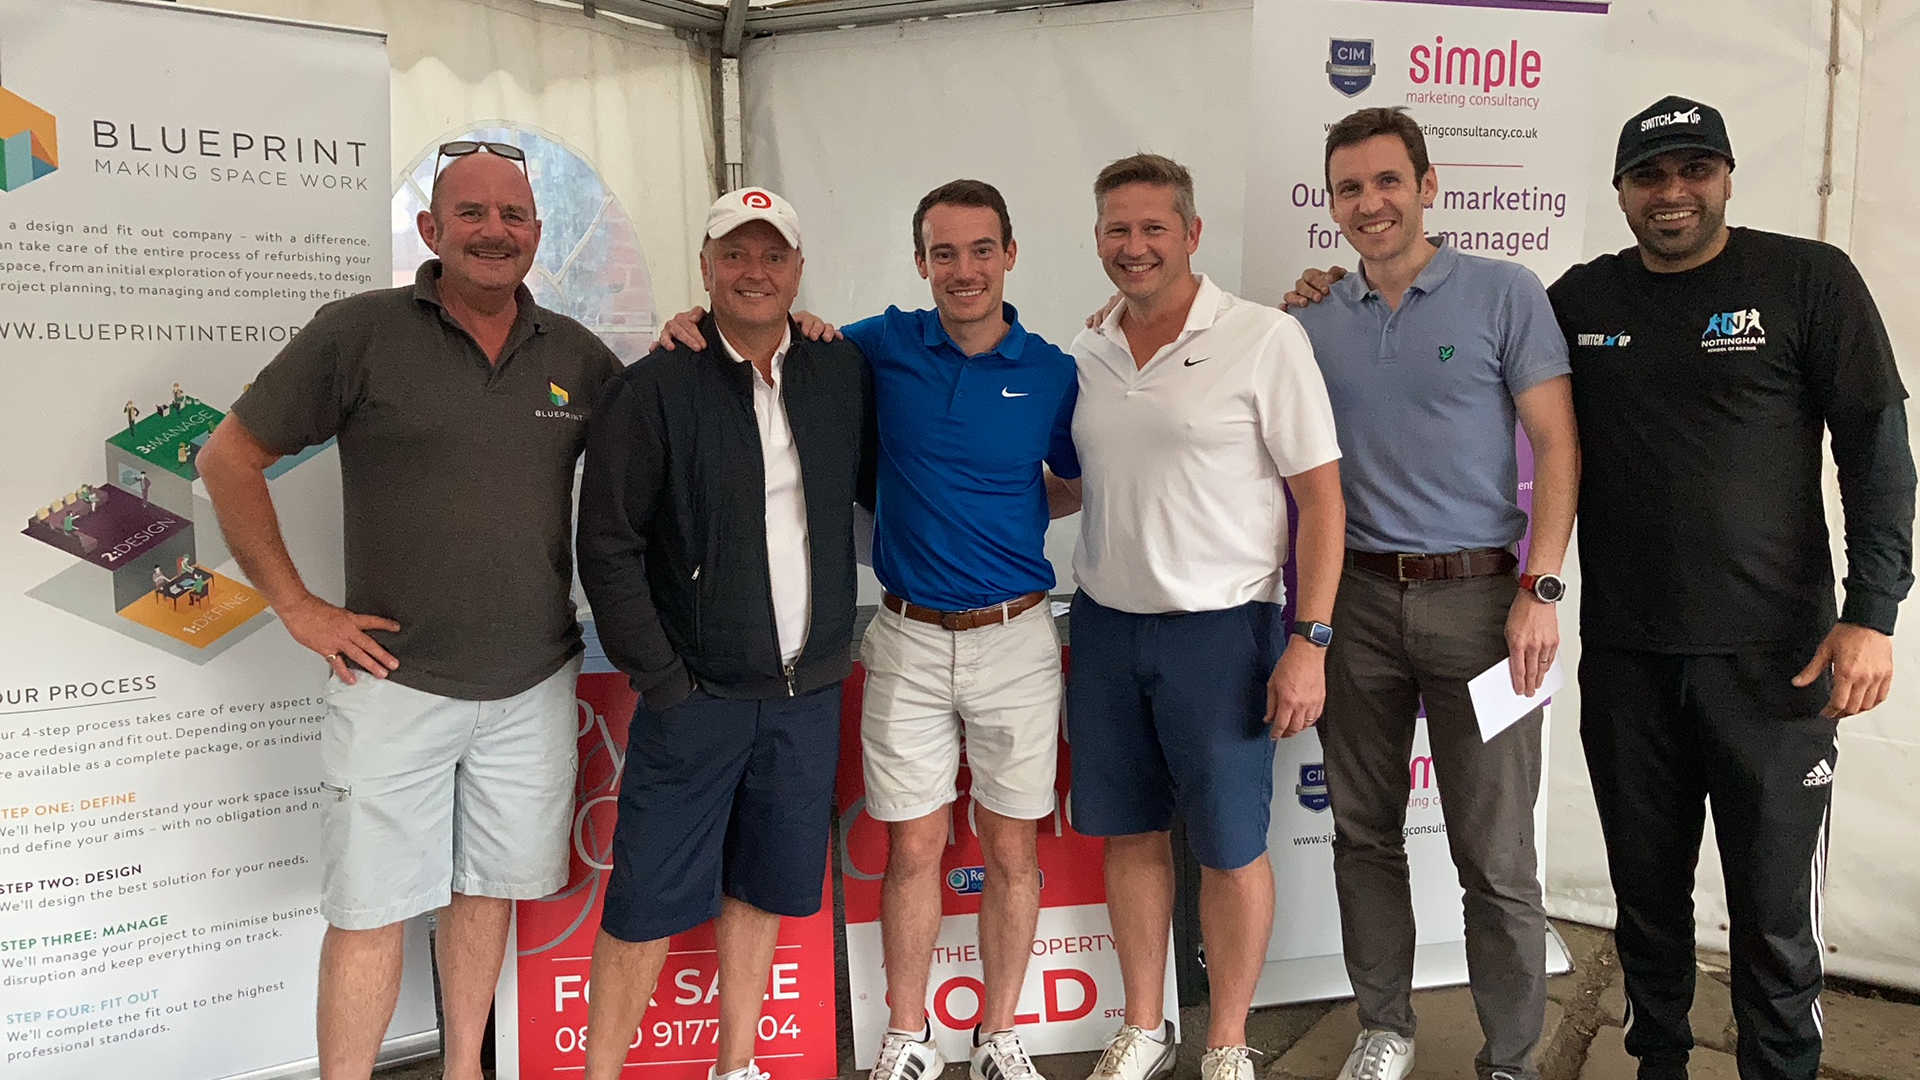 East Mids Construction and Property Sector tees off to raise £3,000 for SWITCH UP